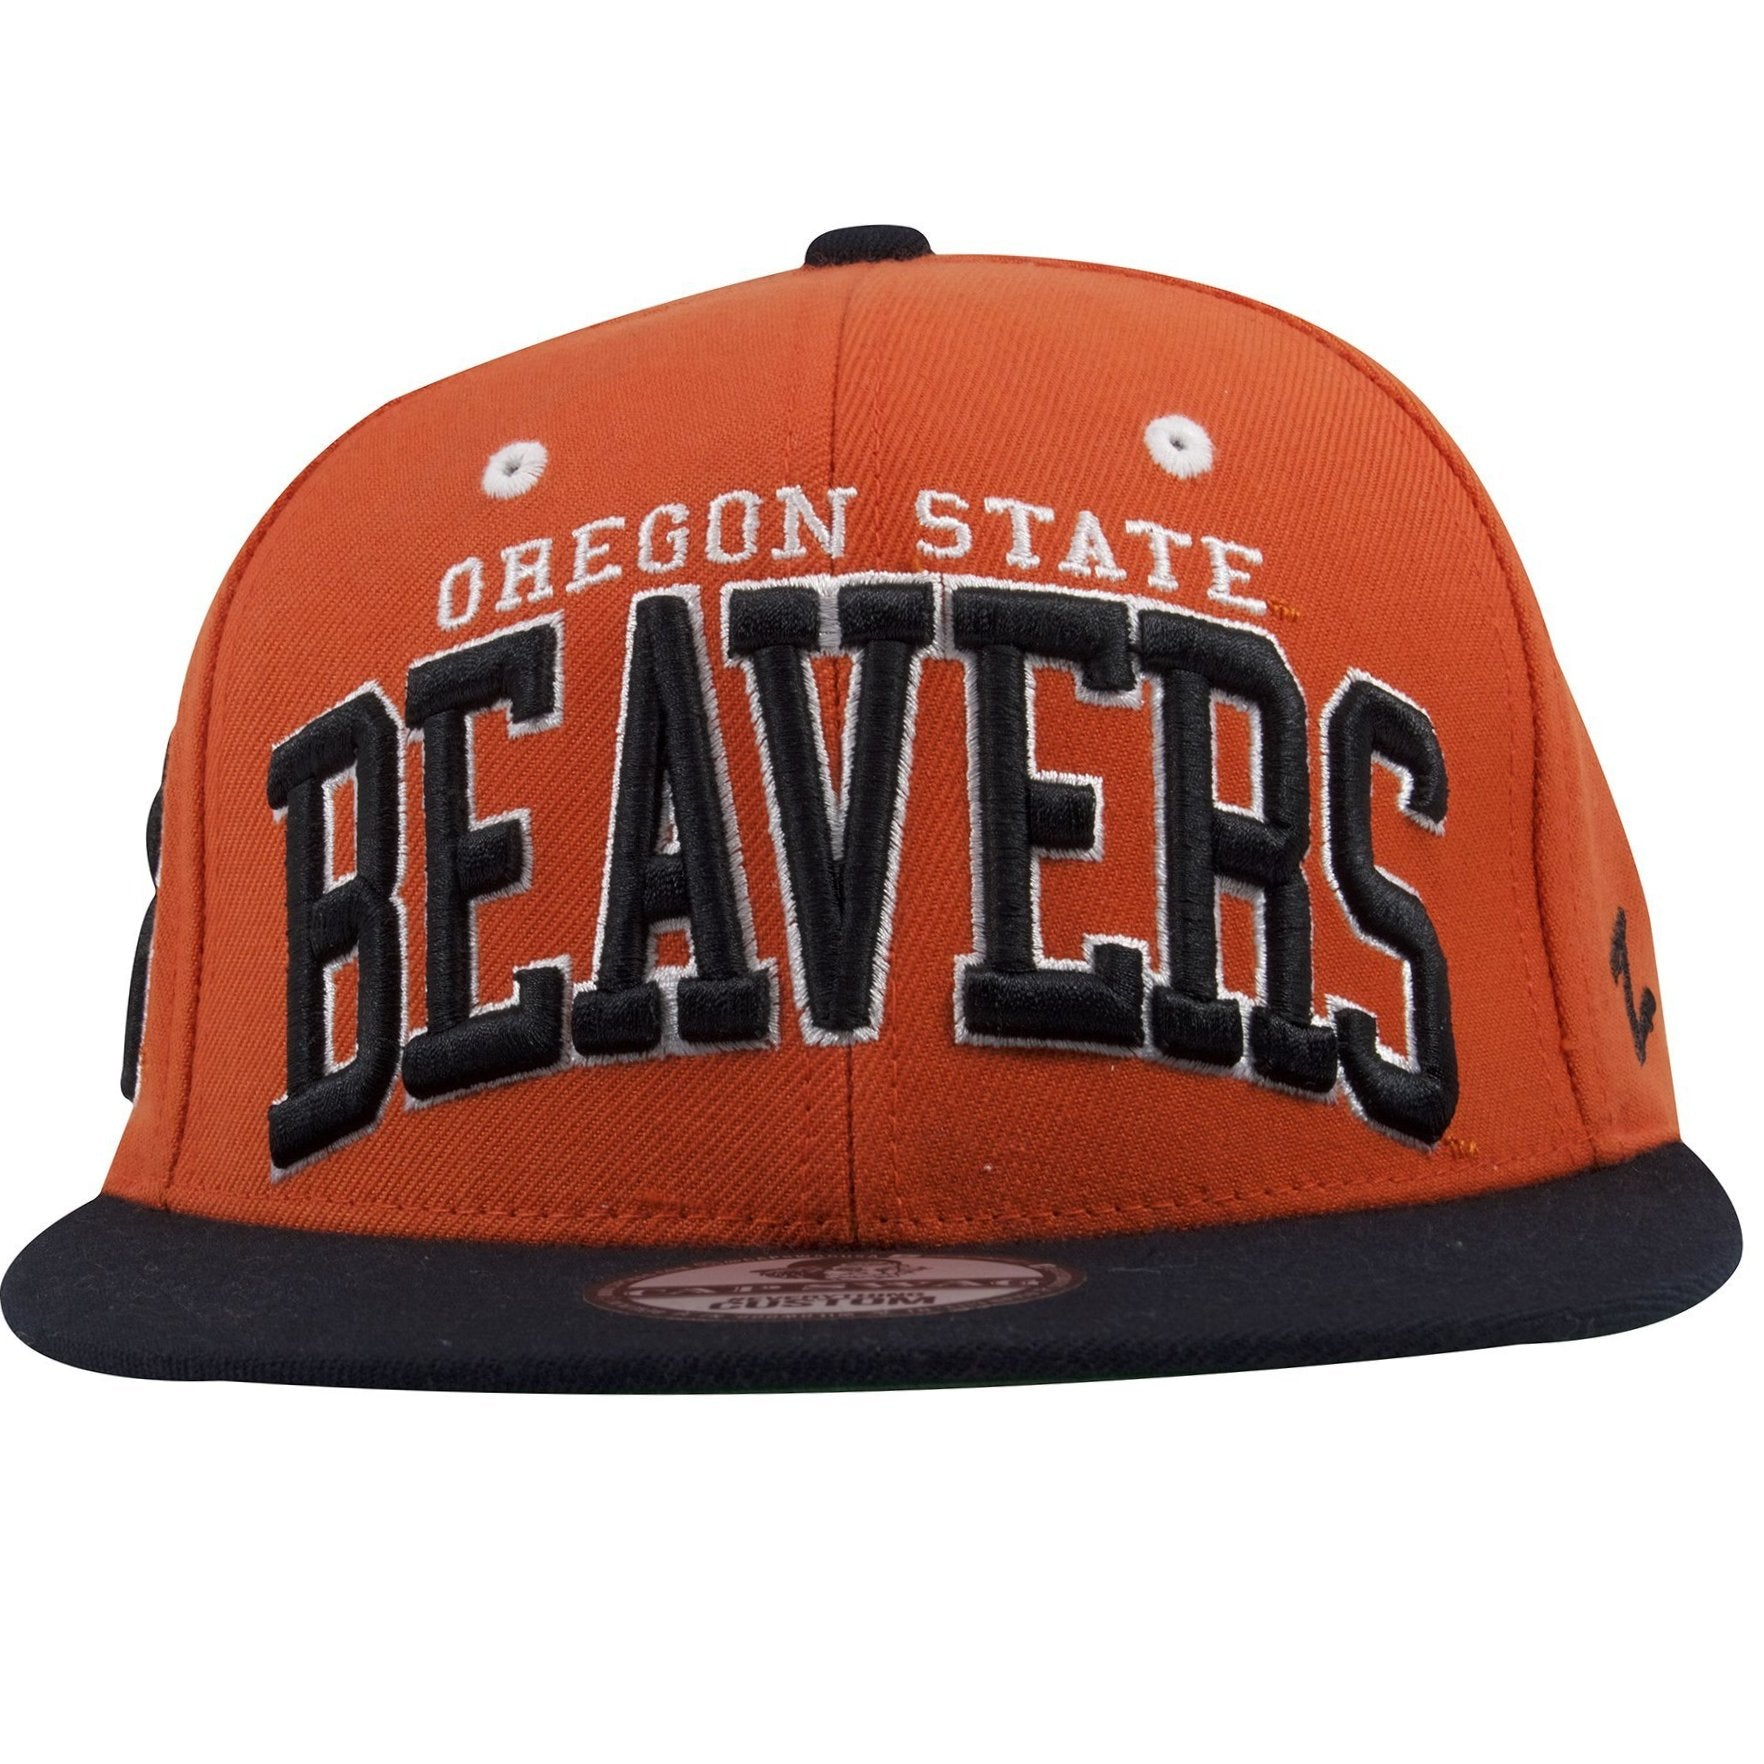 the best attitude 124ae e0e85 on the front of the oregon state beavers orange on black snapback hat is  the lettering